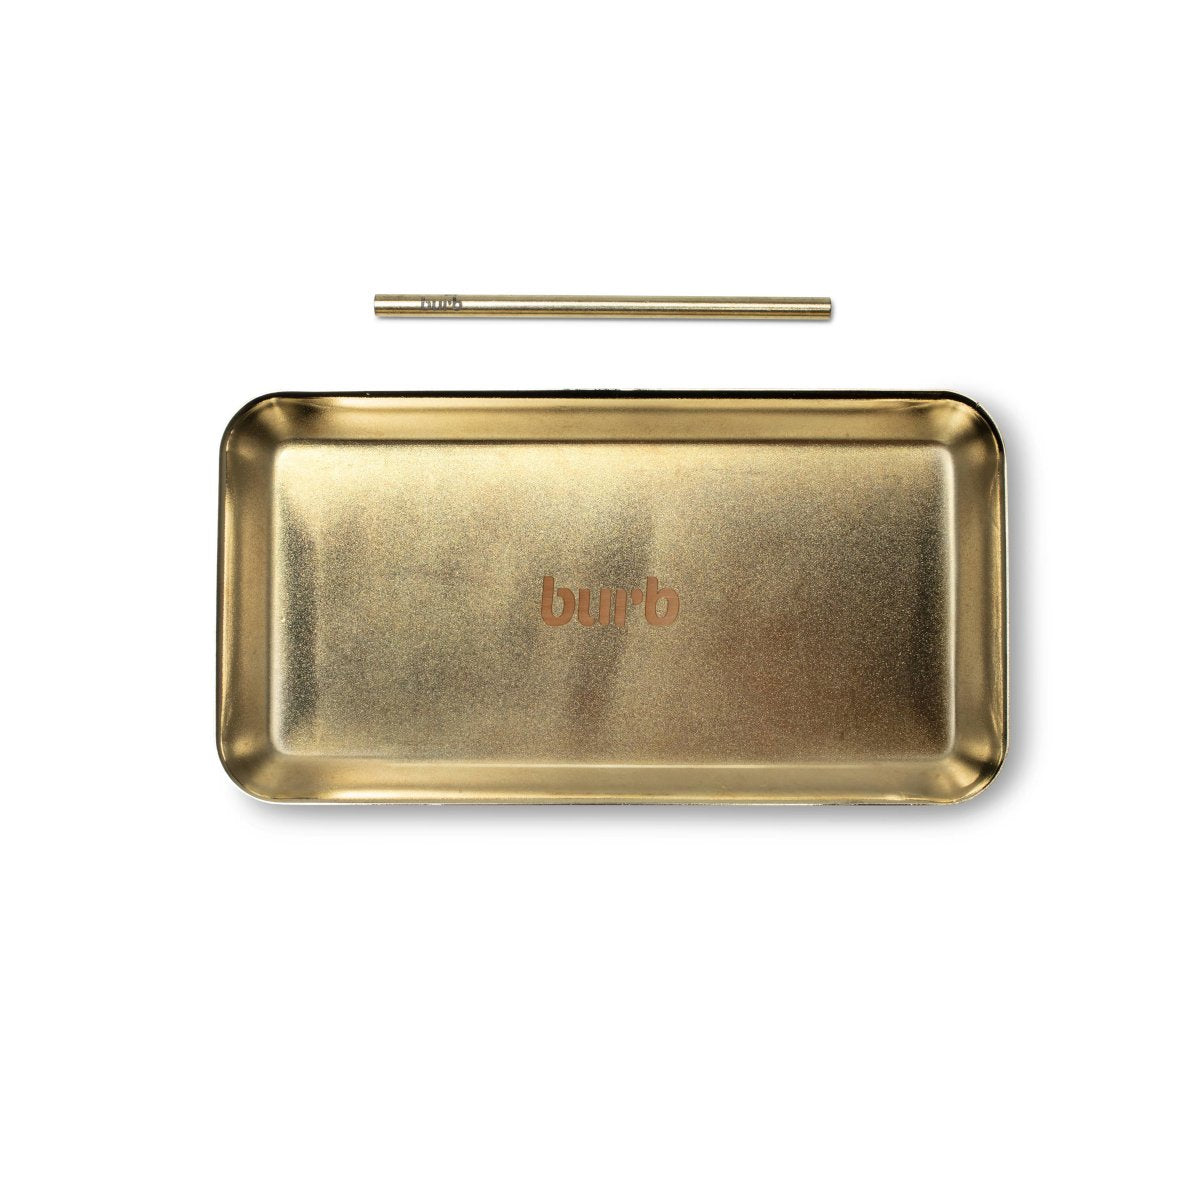 Burb Magnetic Rolling Tray